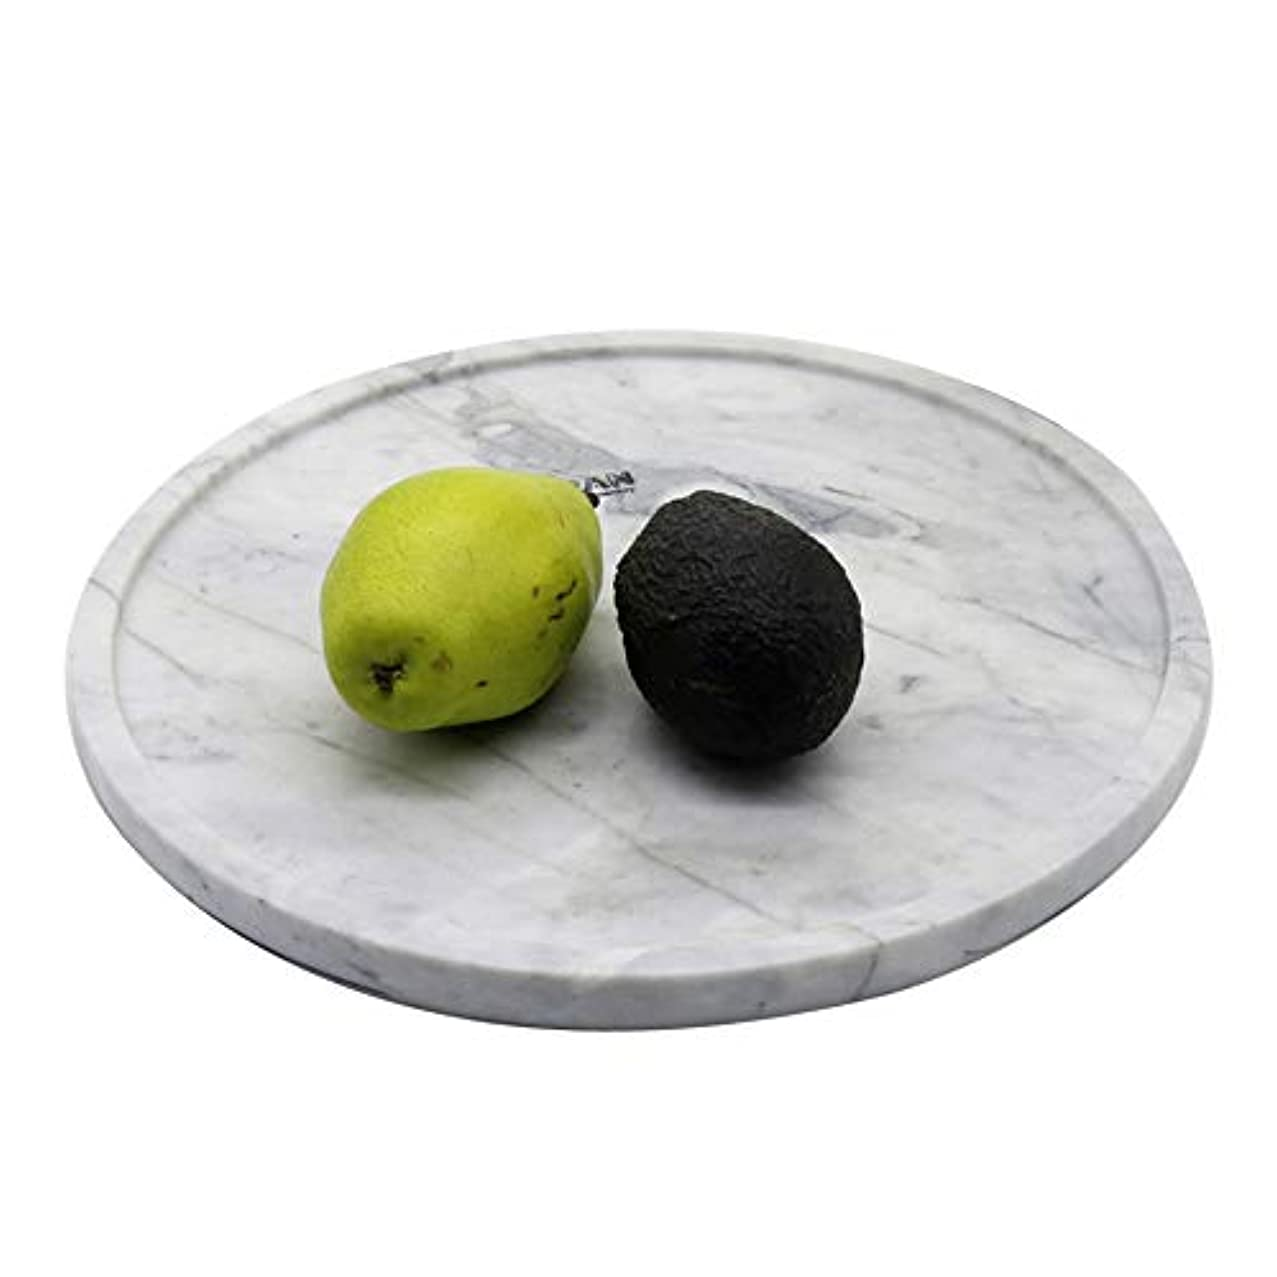 Marble circular tray Cake Plate Jewelry Dish Ring Dish Cosmetics Organizer Fruit Dish Home Decor Wedding Gift (2020)